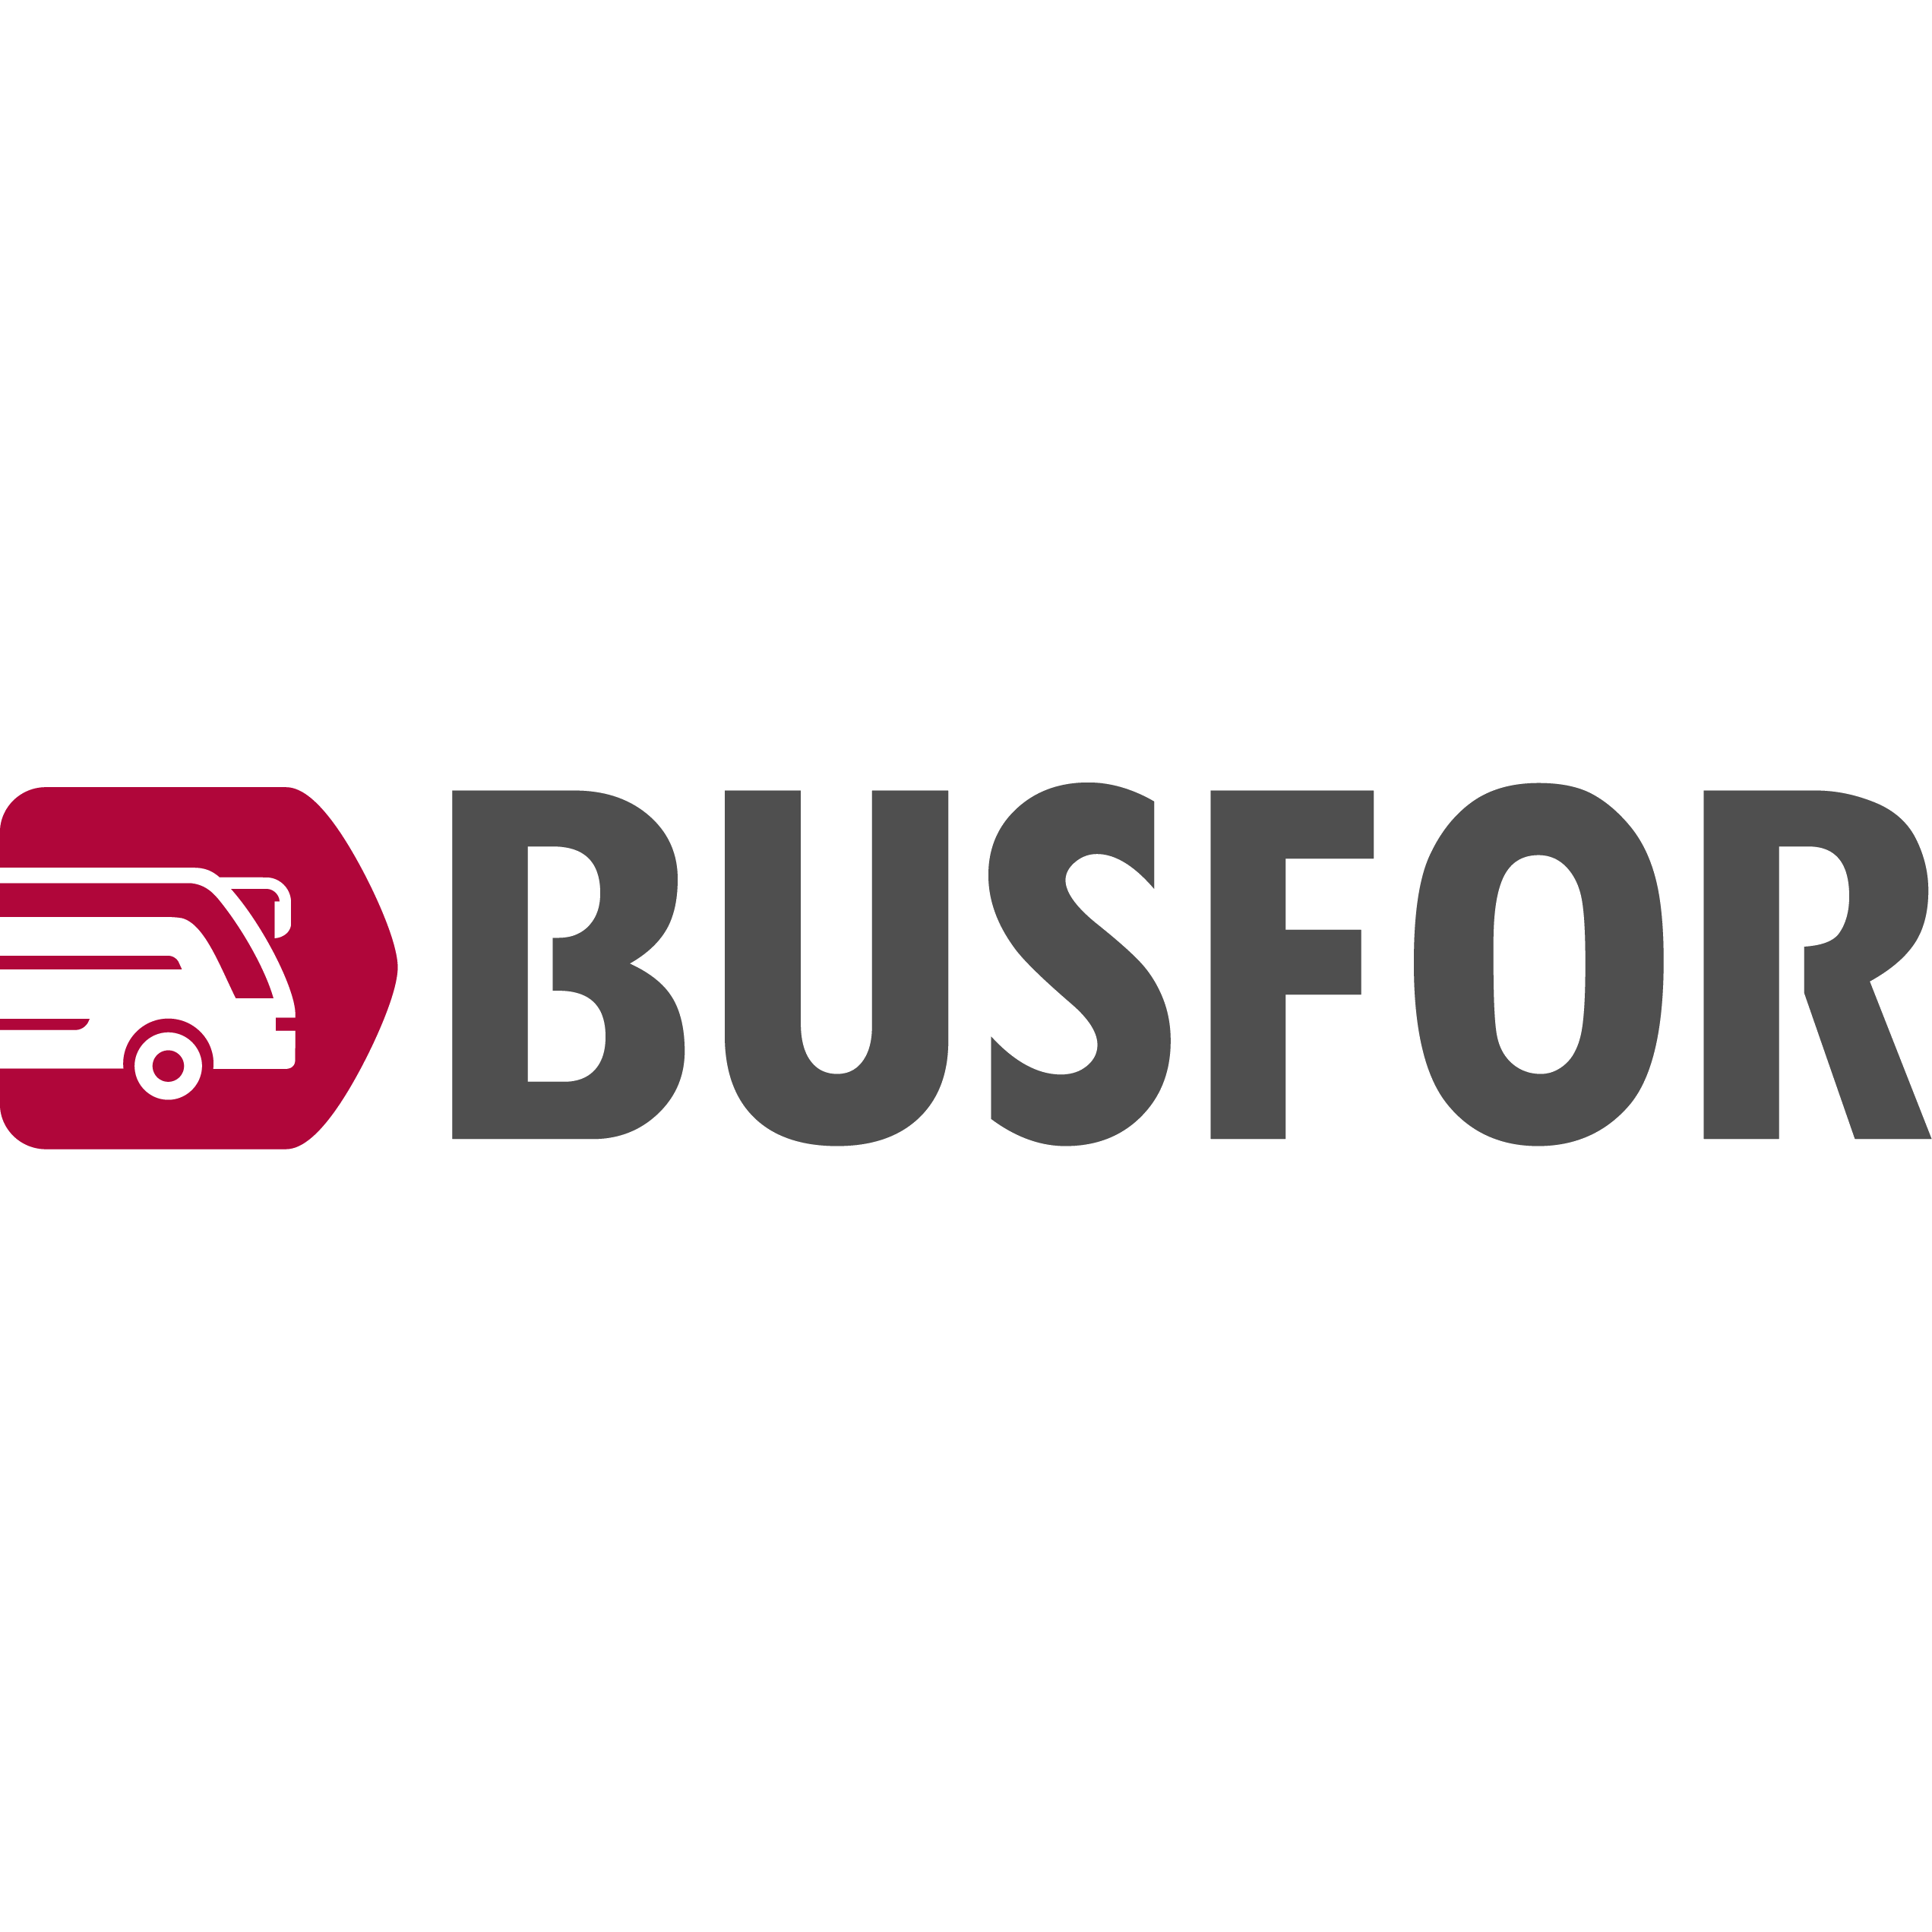 Busfor icon